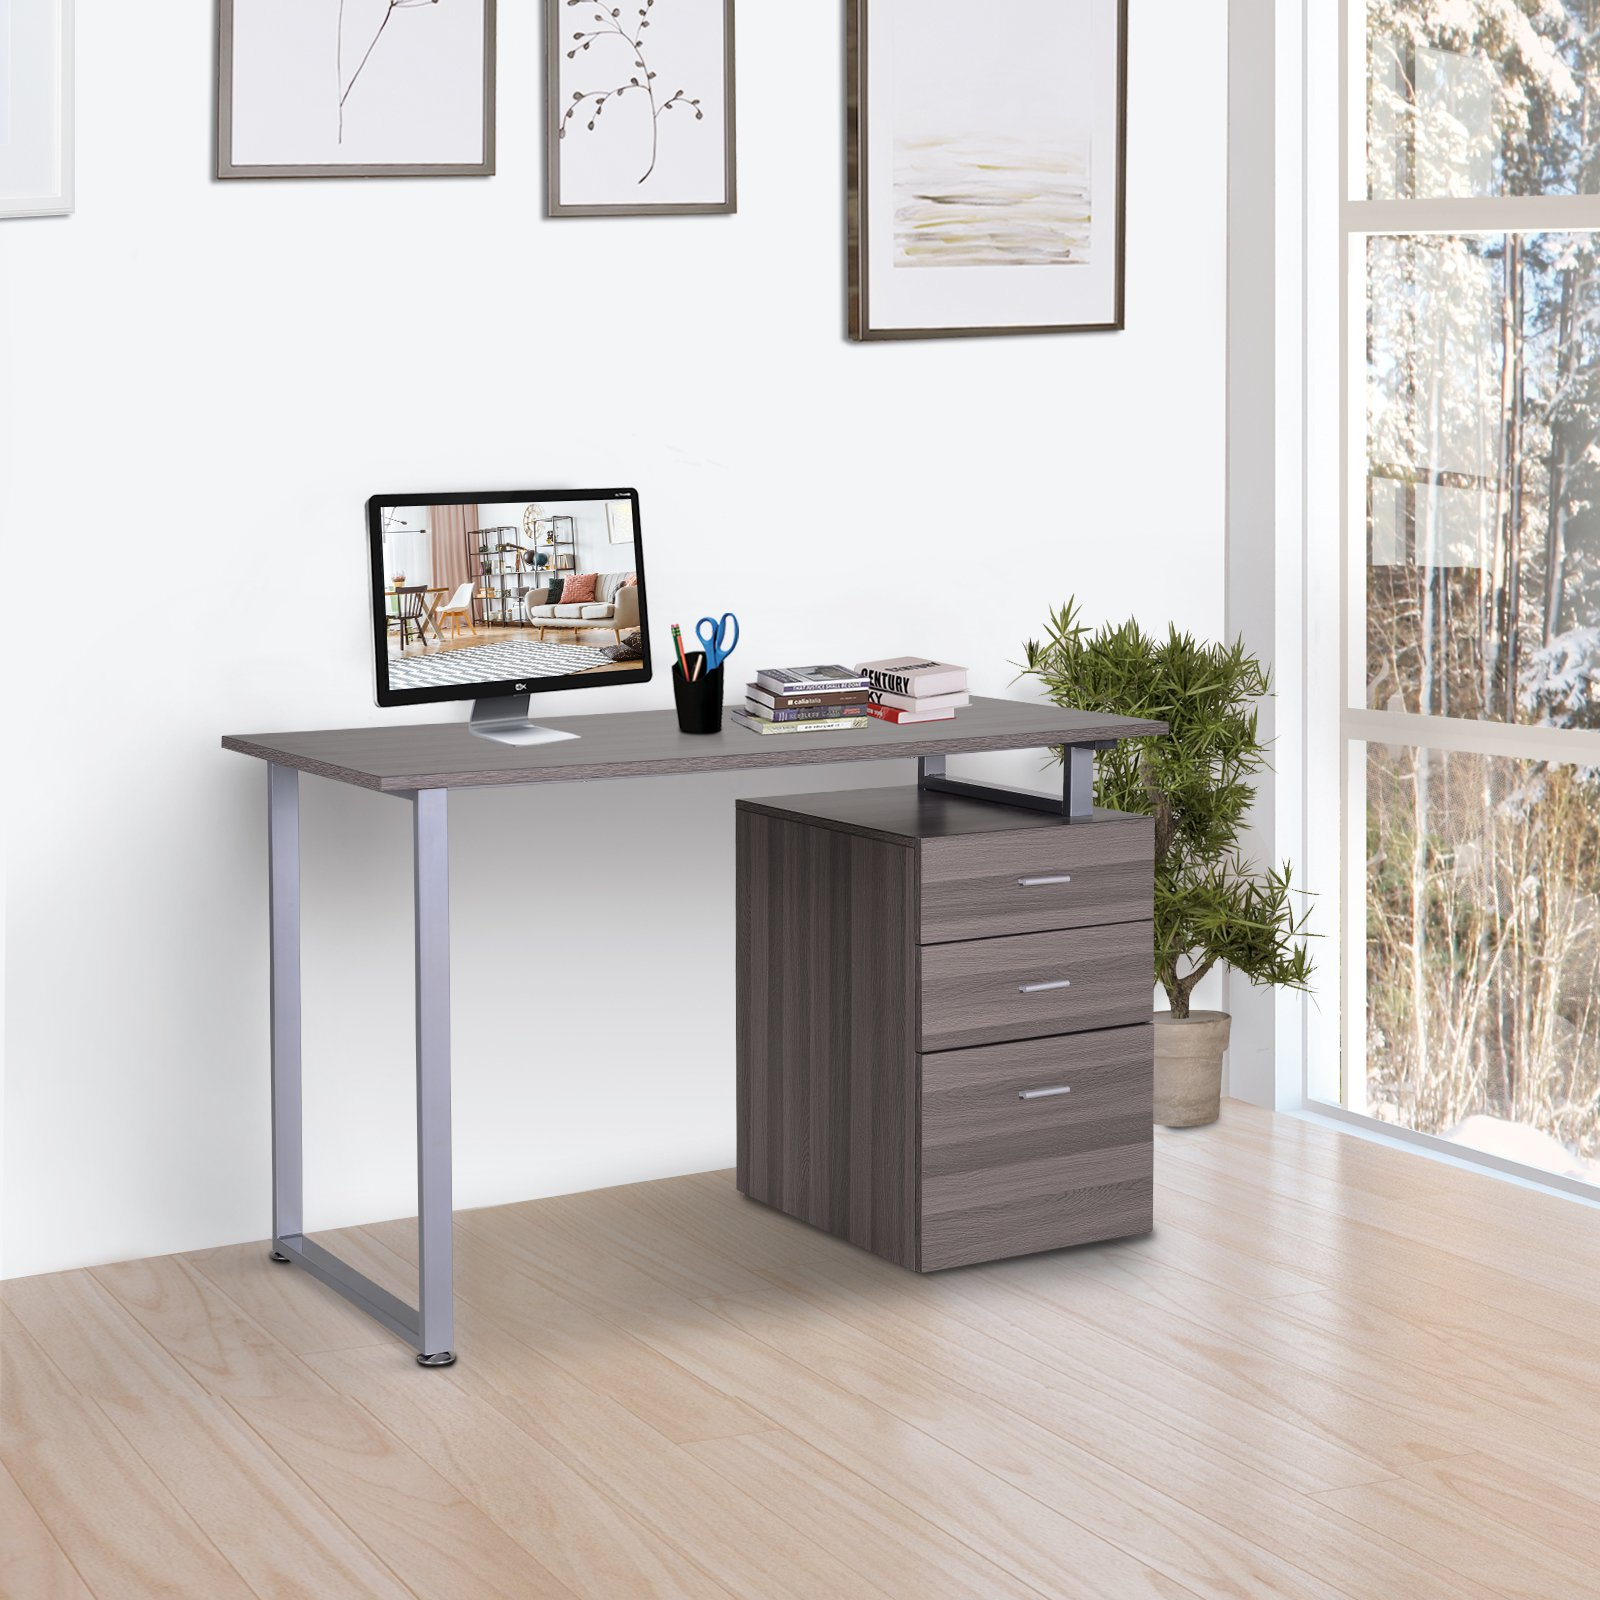 Homcom Industrial Style Office Desk Computer Desk With Multi Use Removable File Drawers Dark Wood Grain Color Office Desks Work Stations Aosom Canada